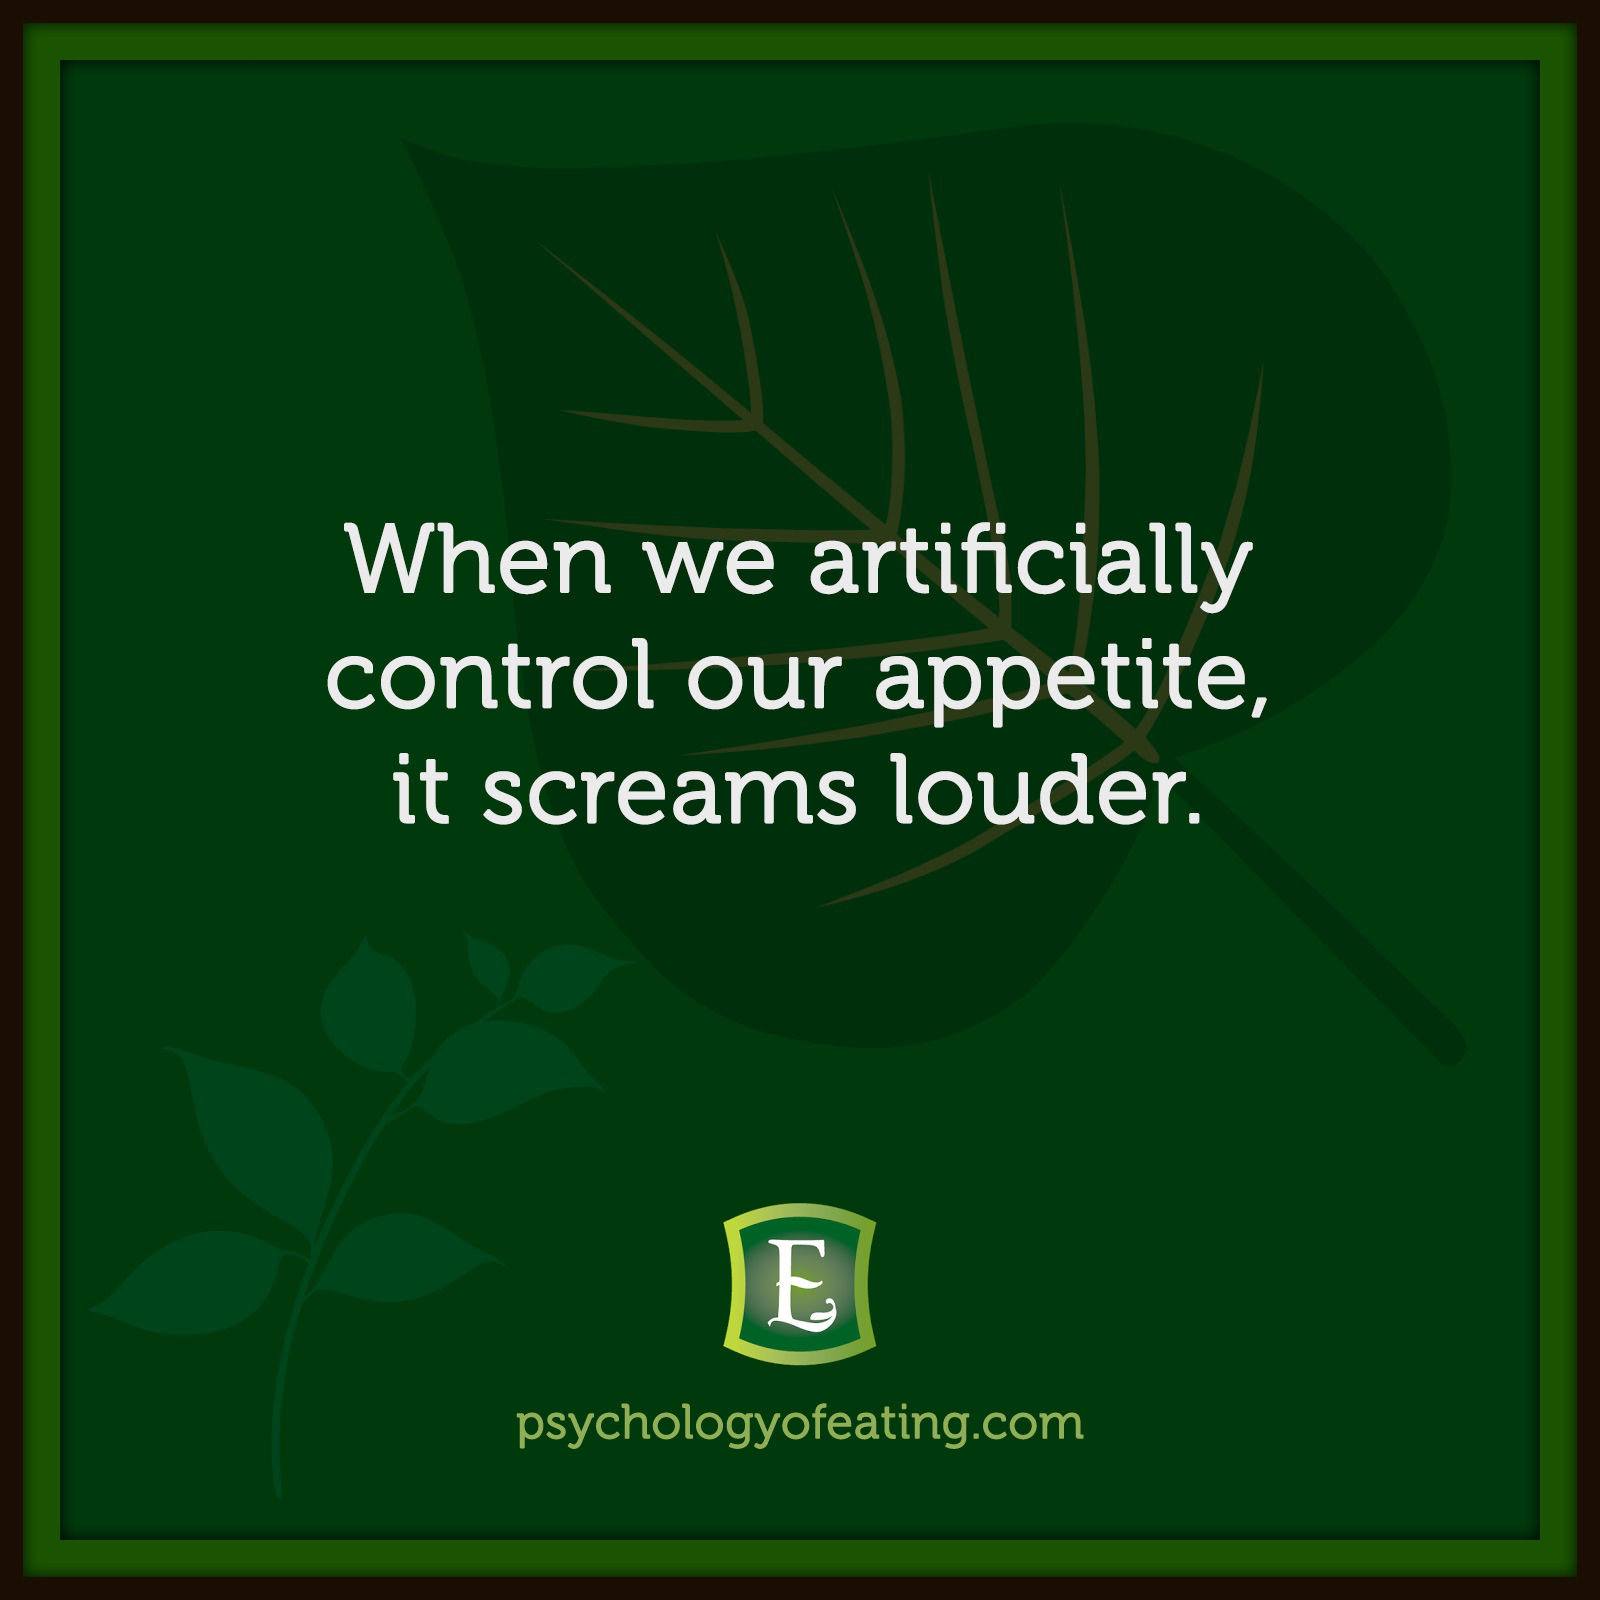 When we artificially control our appetite, it screams louder. #health #nutrition #eatingpsychology #IPE